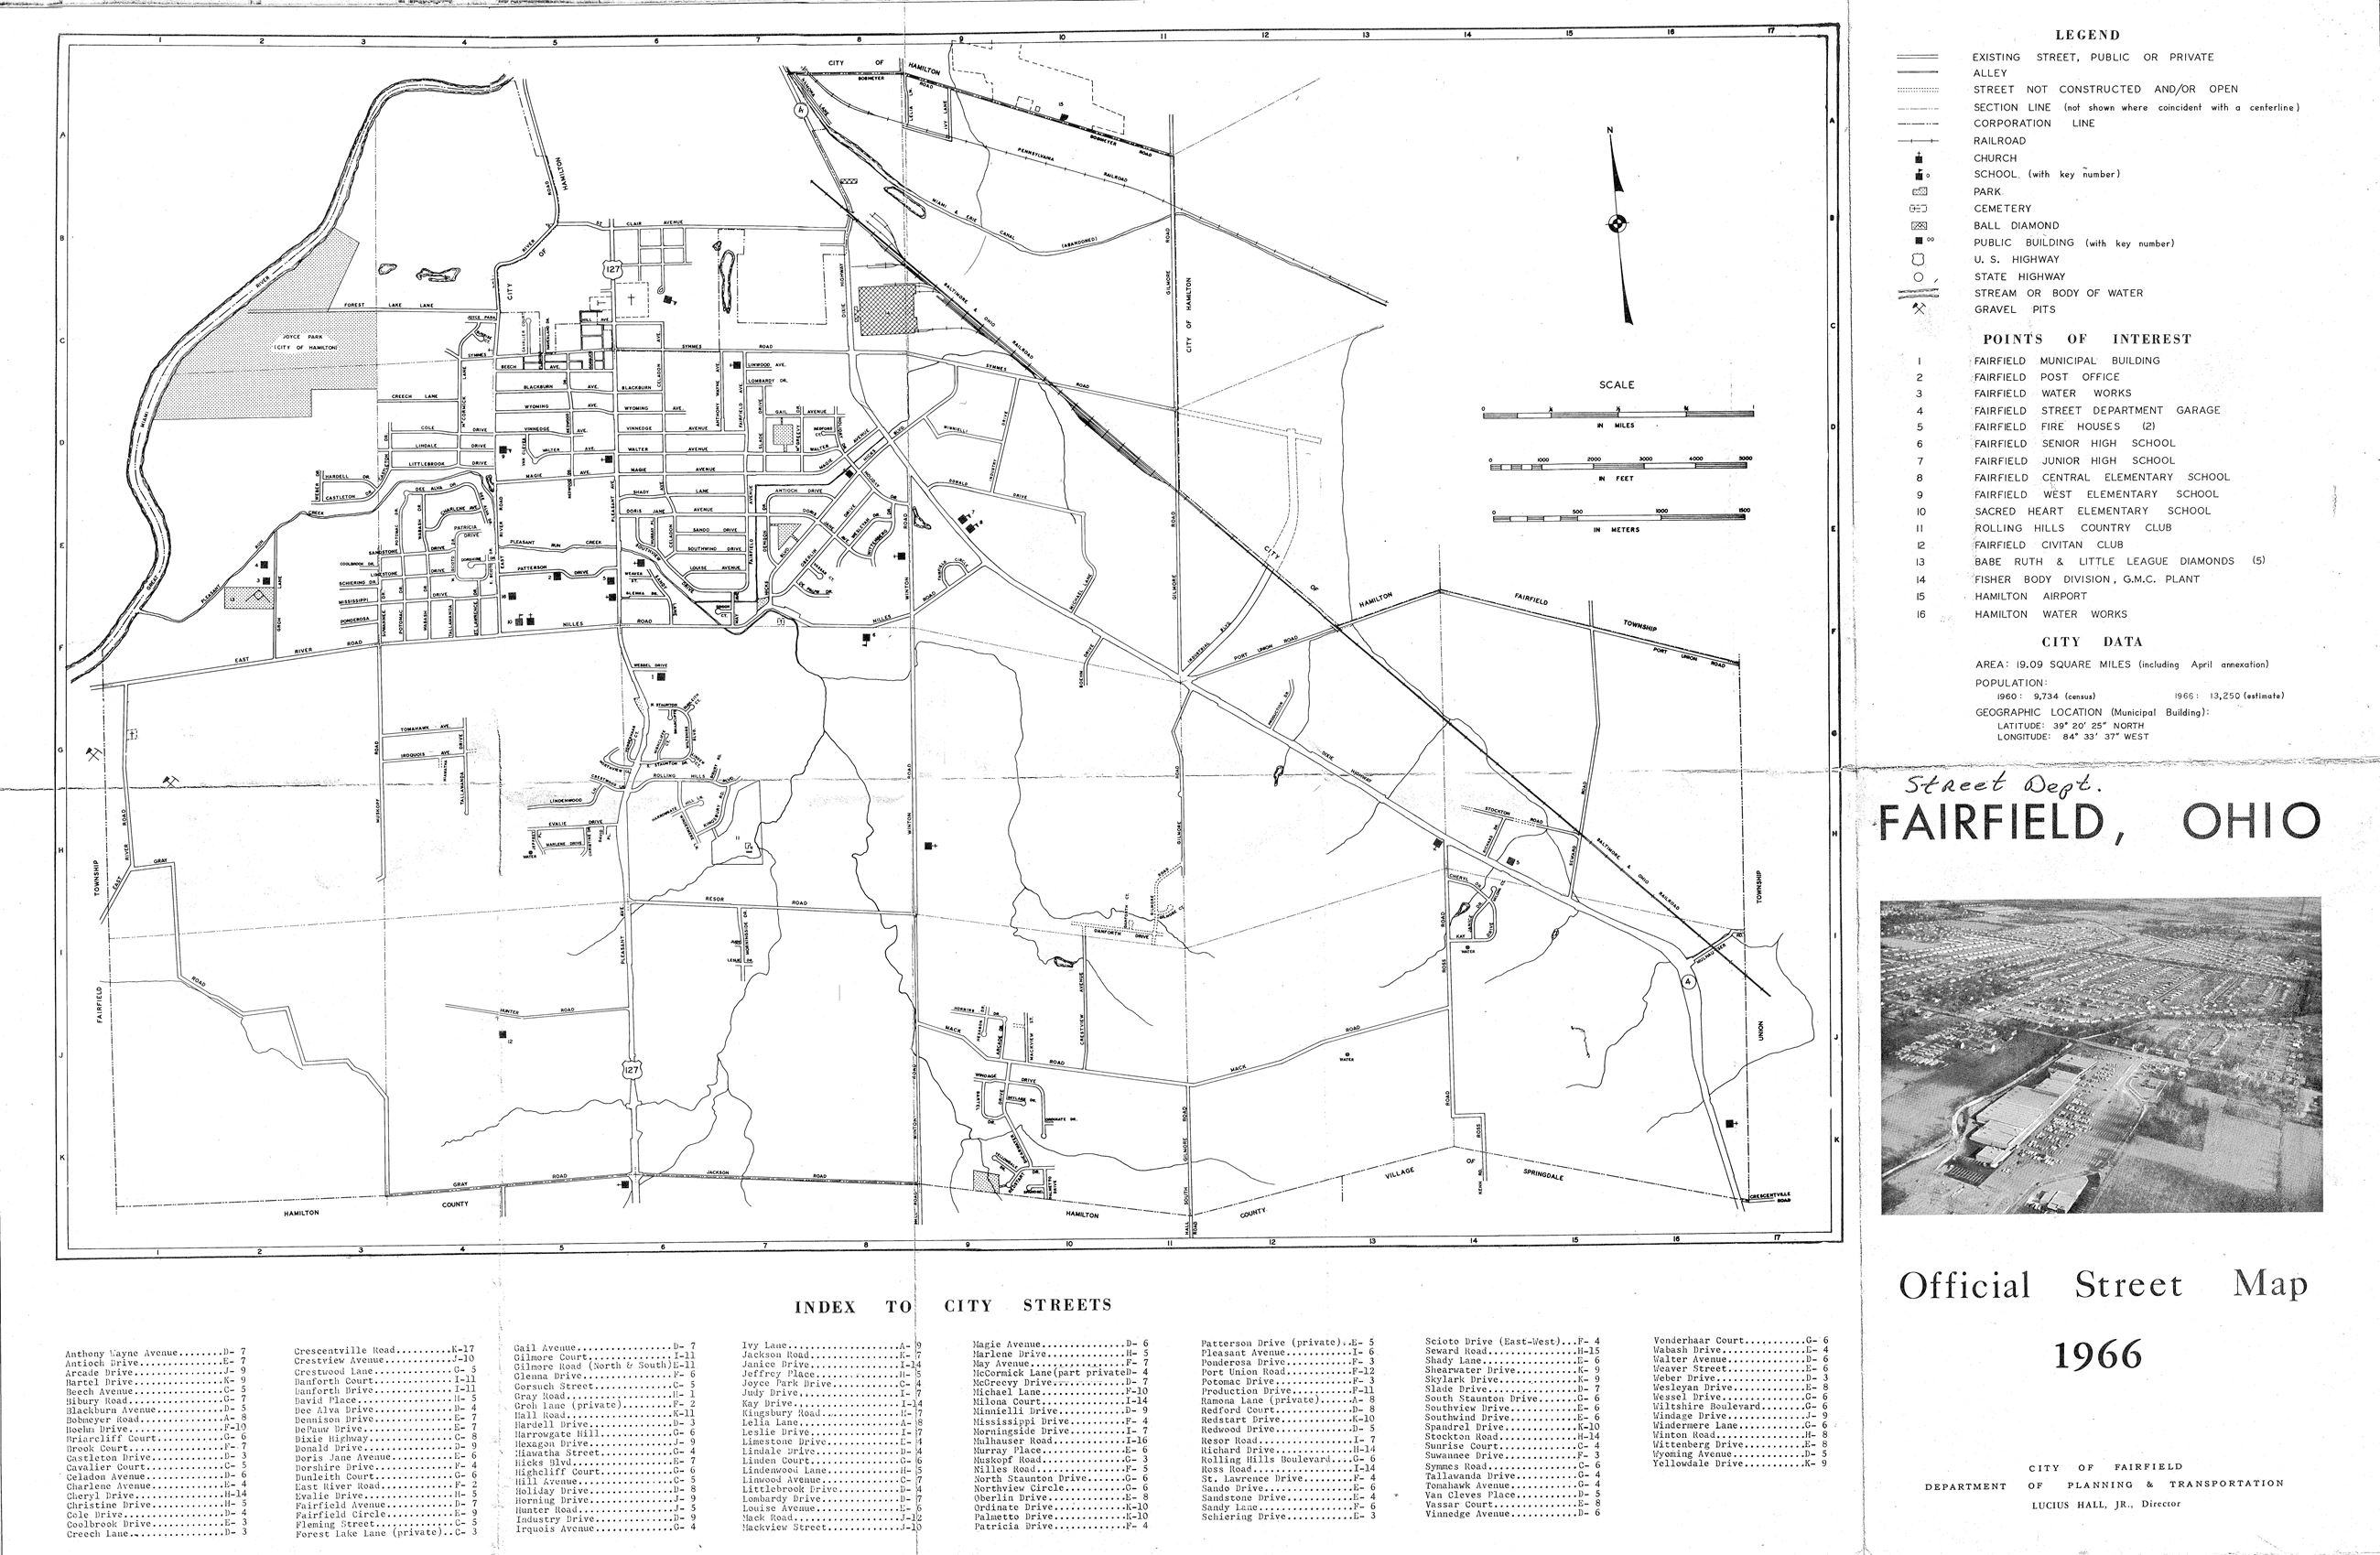 1966 City of Fairfield Street Map